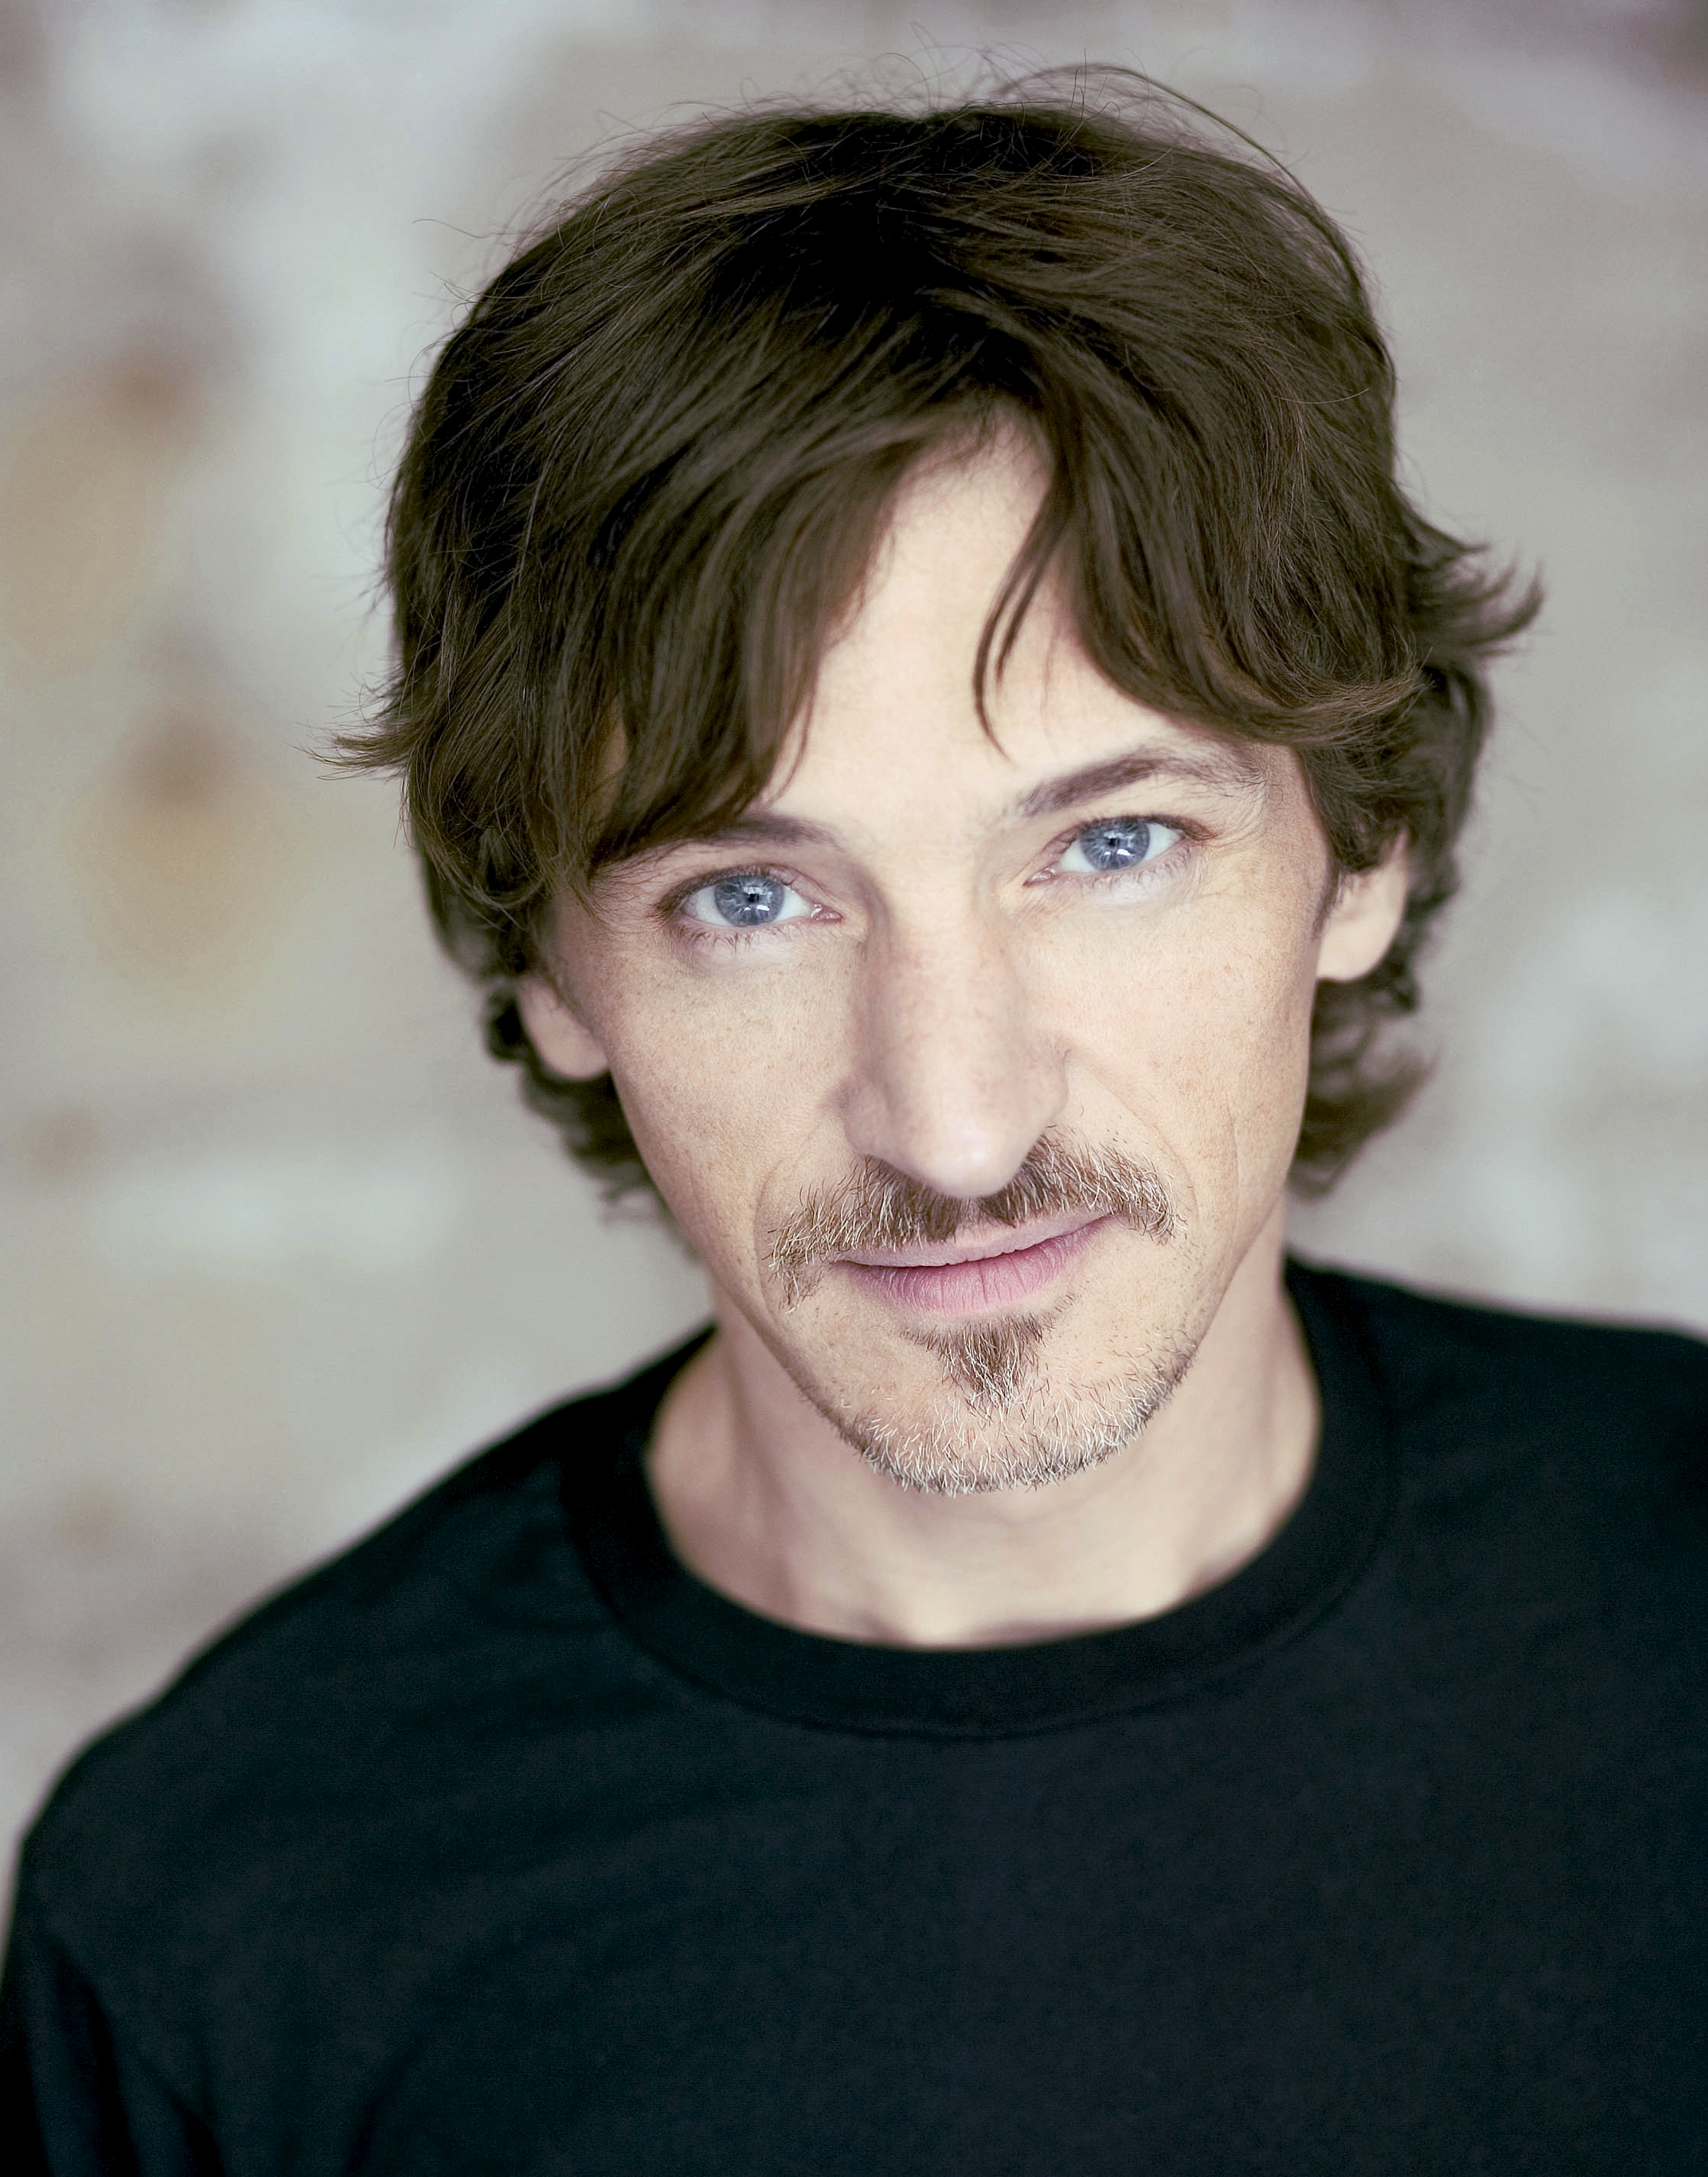 John Hawkes earned a  million dollar salary, leaving the net worth at 4 million in 2017